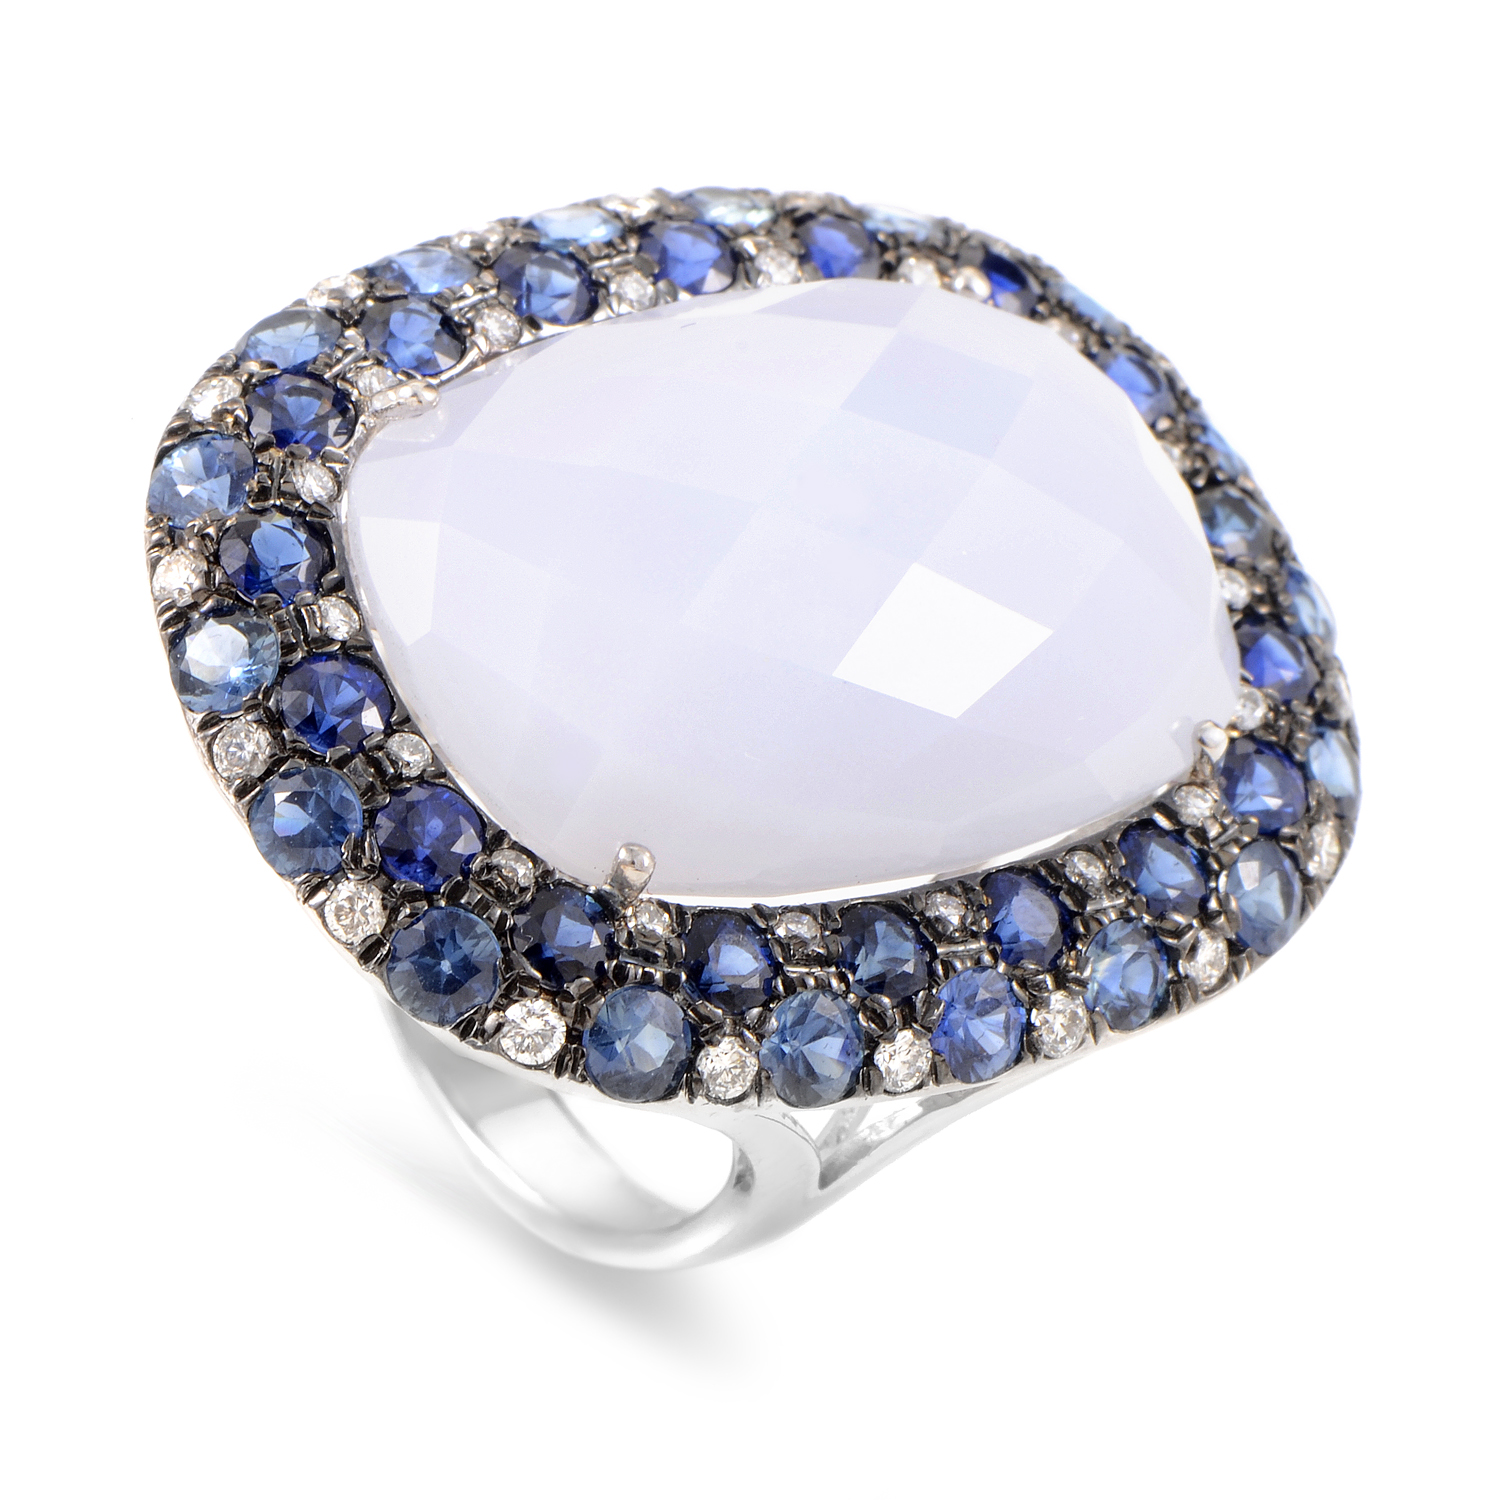 18K White Gold Multi-Gemstone Cocktail Ring RC8-11068WSA